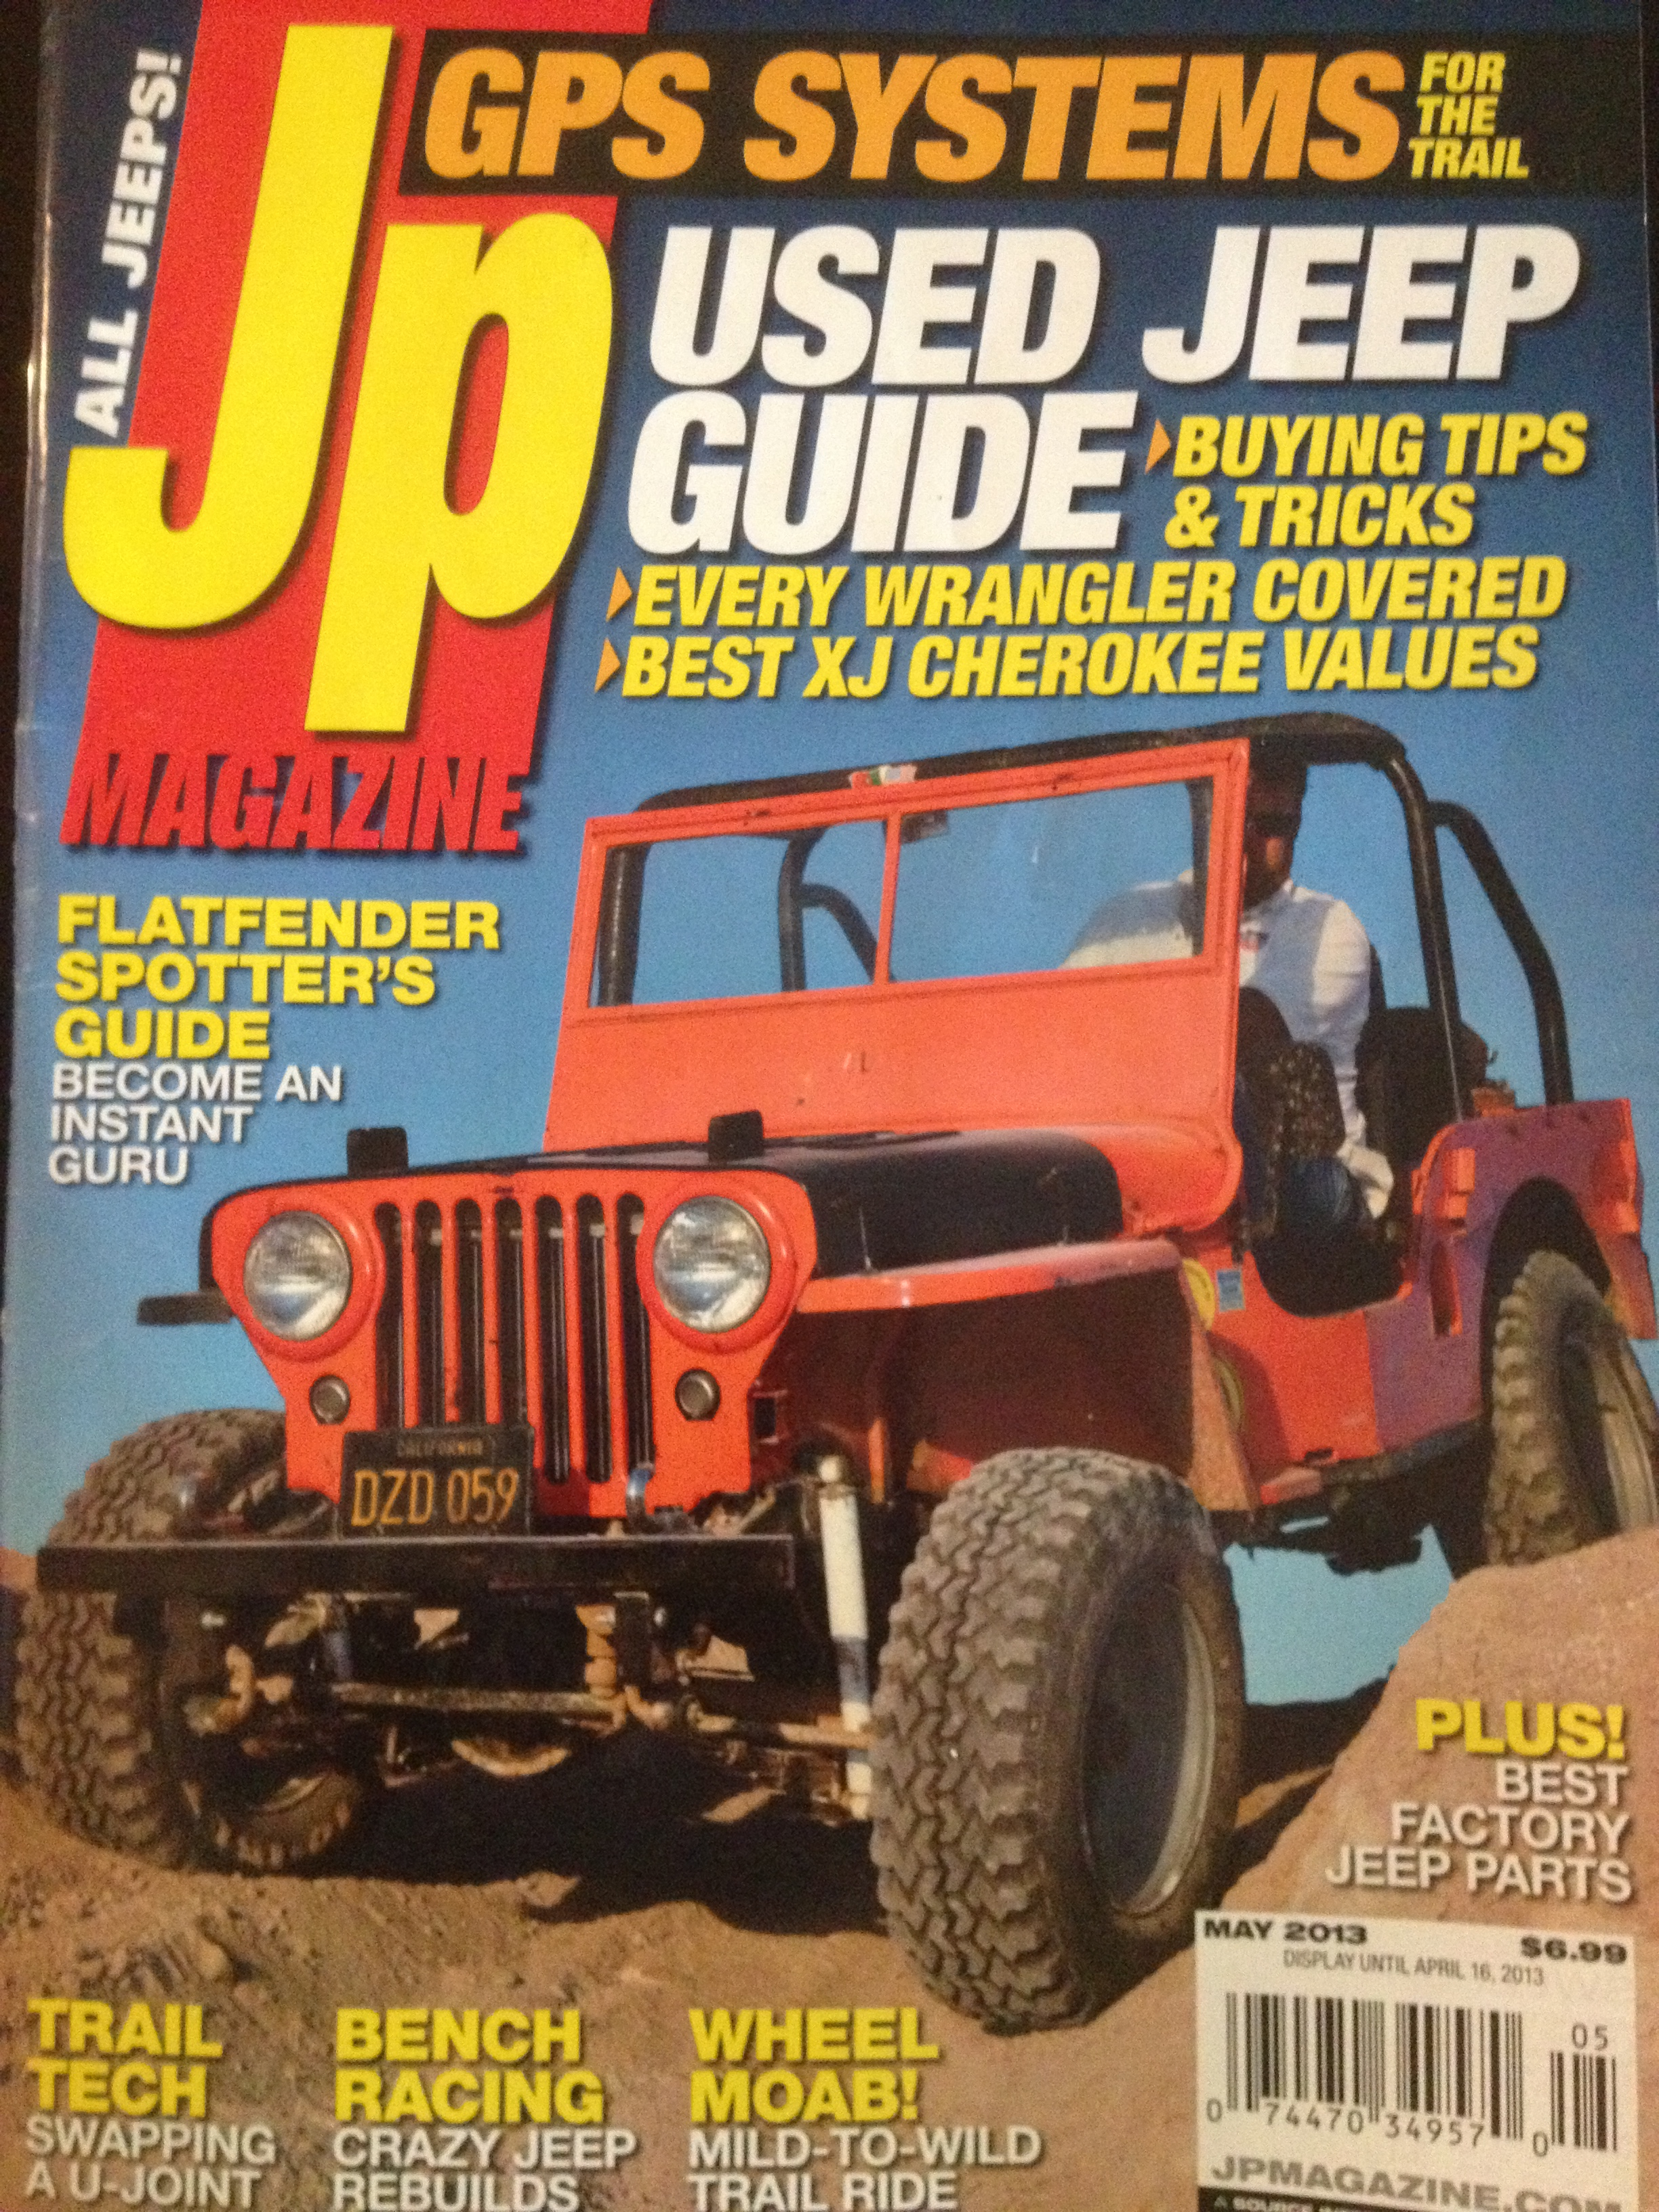 Jeep CJ7 Parts & Accessories - Best CJ7 Off Road Parts